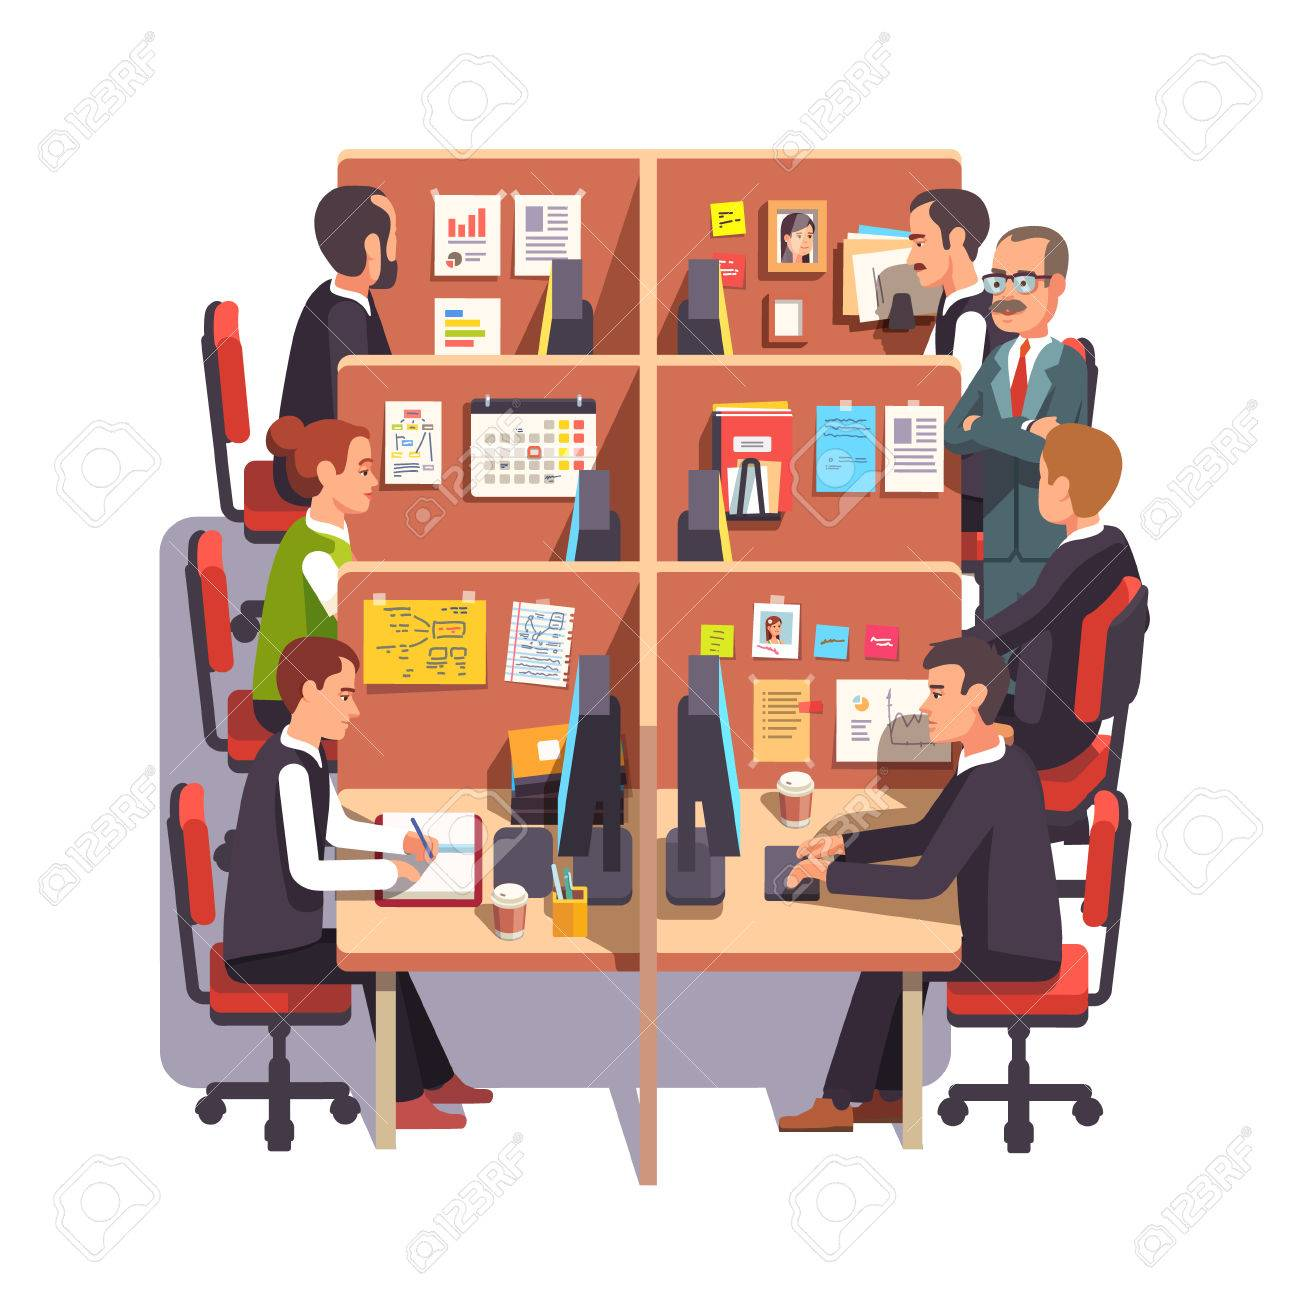 Office work desks Modern Cubicle Office Work Space With Employees At The Desks And Supervising Boss Flat Style Color 123rfcom Cubicle Office Work Space With Employees At The Desks And